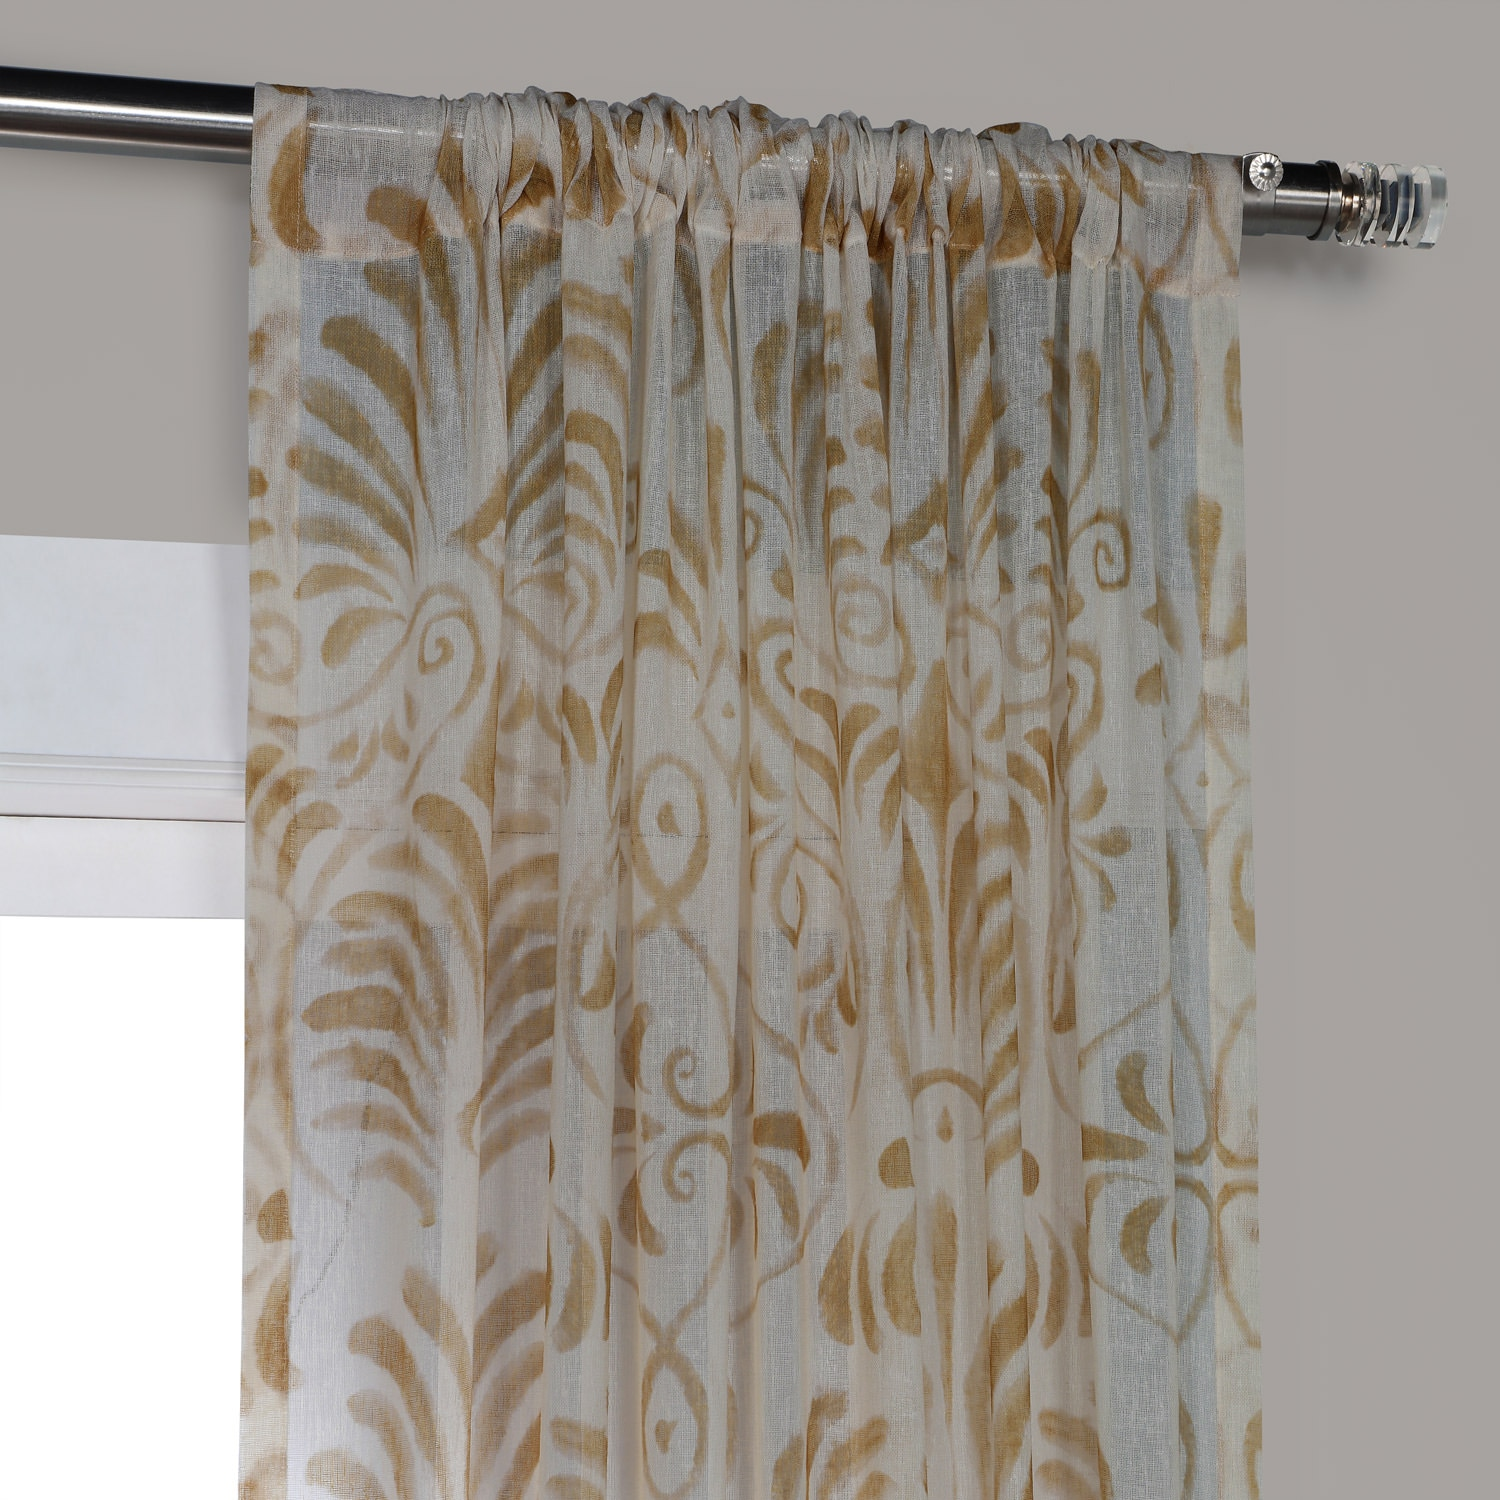 Xenia Tan Printed Faux Linen Sheer Curtain